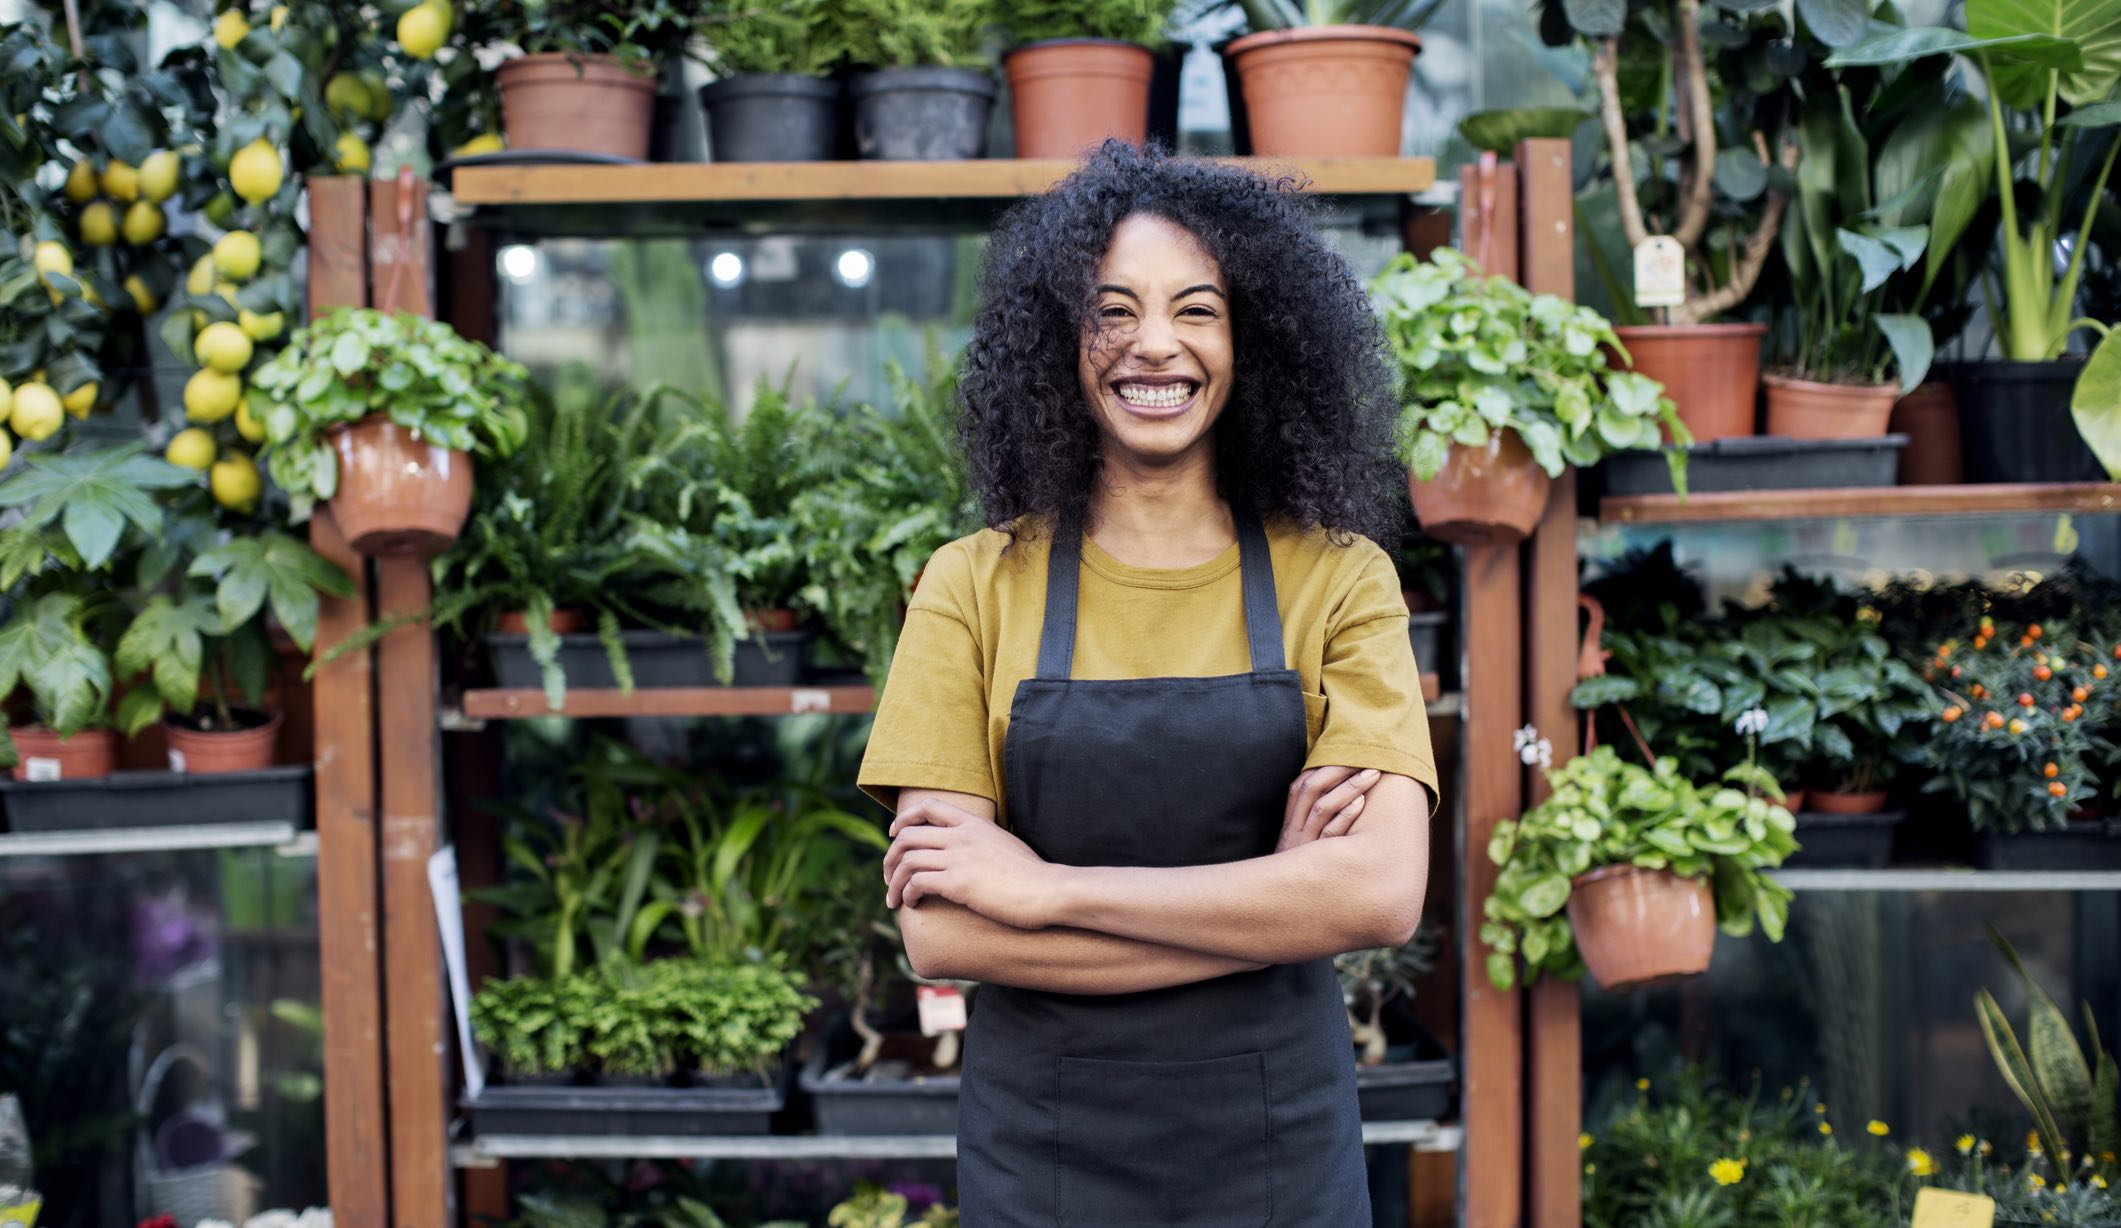 Smiling young person standing in front of a plant shop in an apron, thinking about savings interest rates.